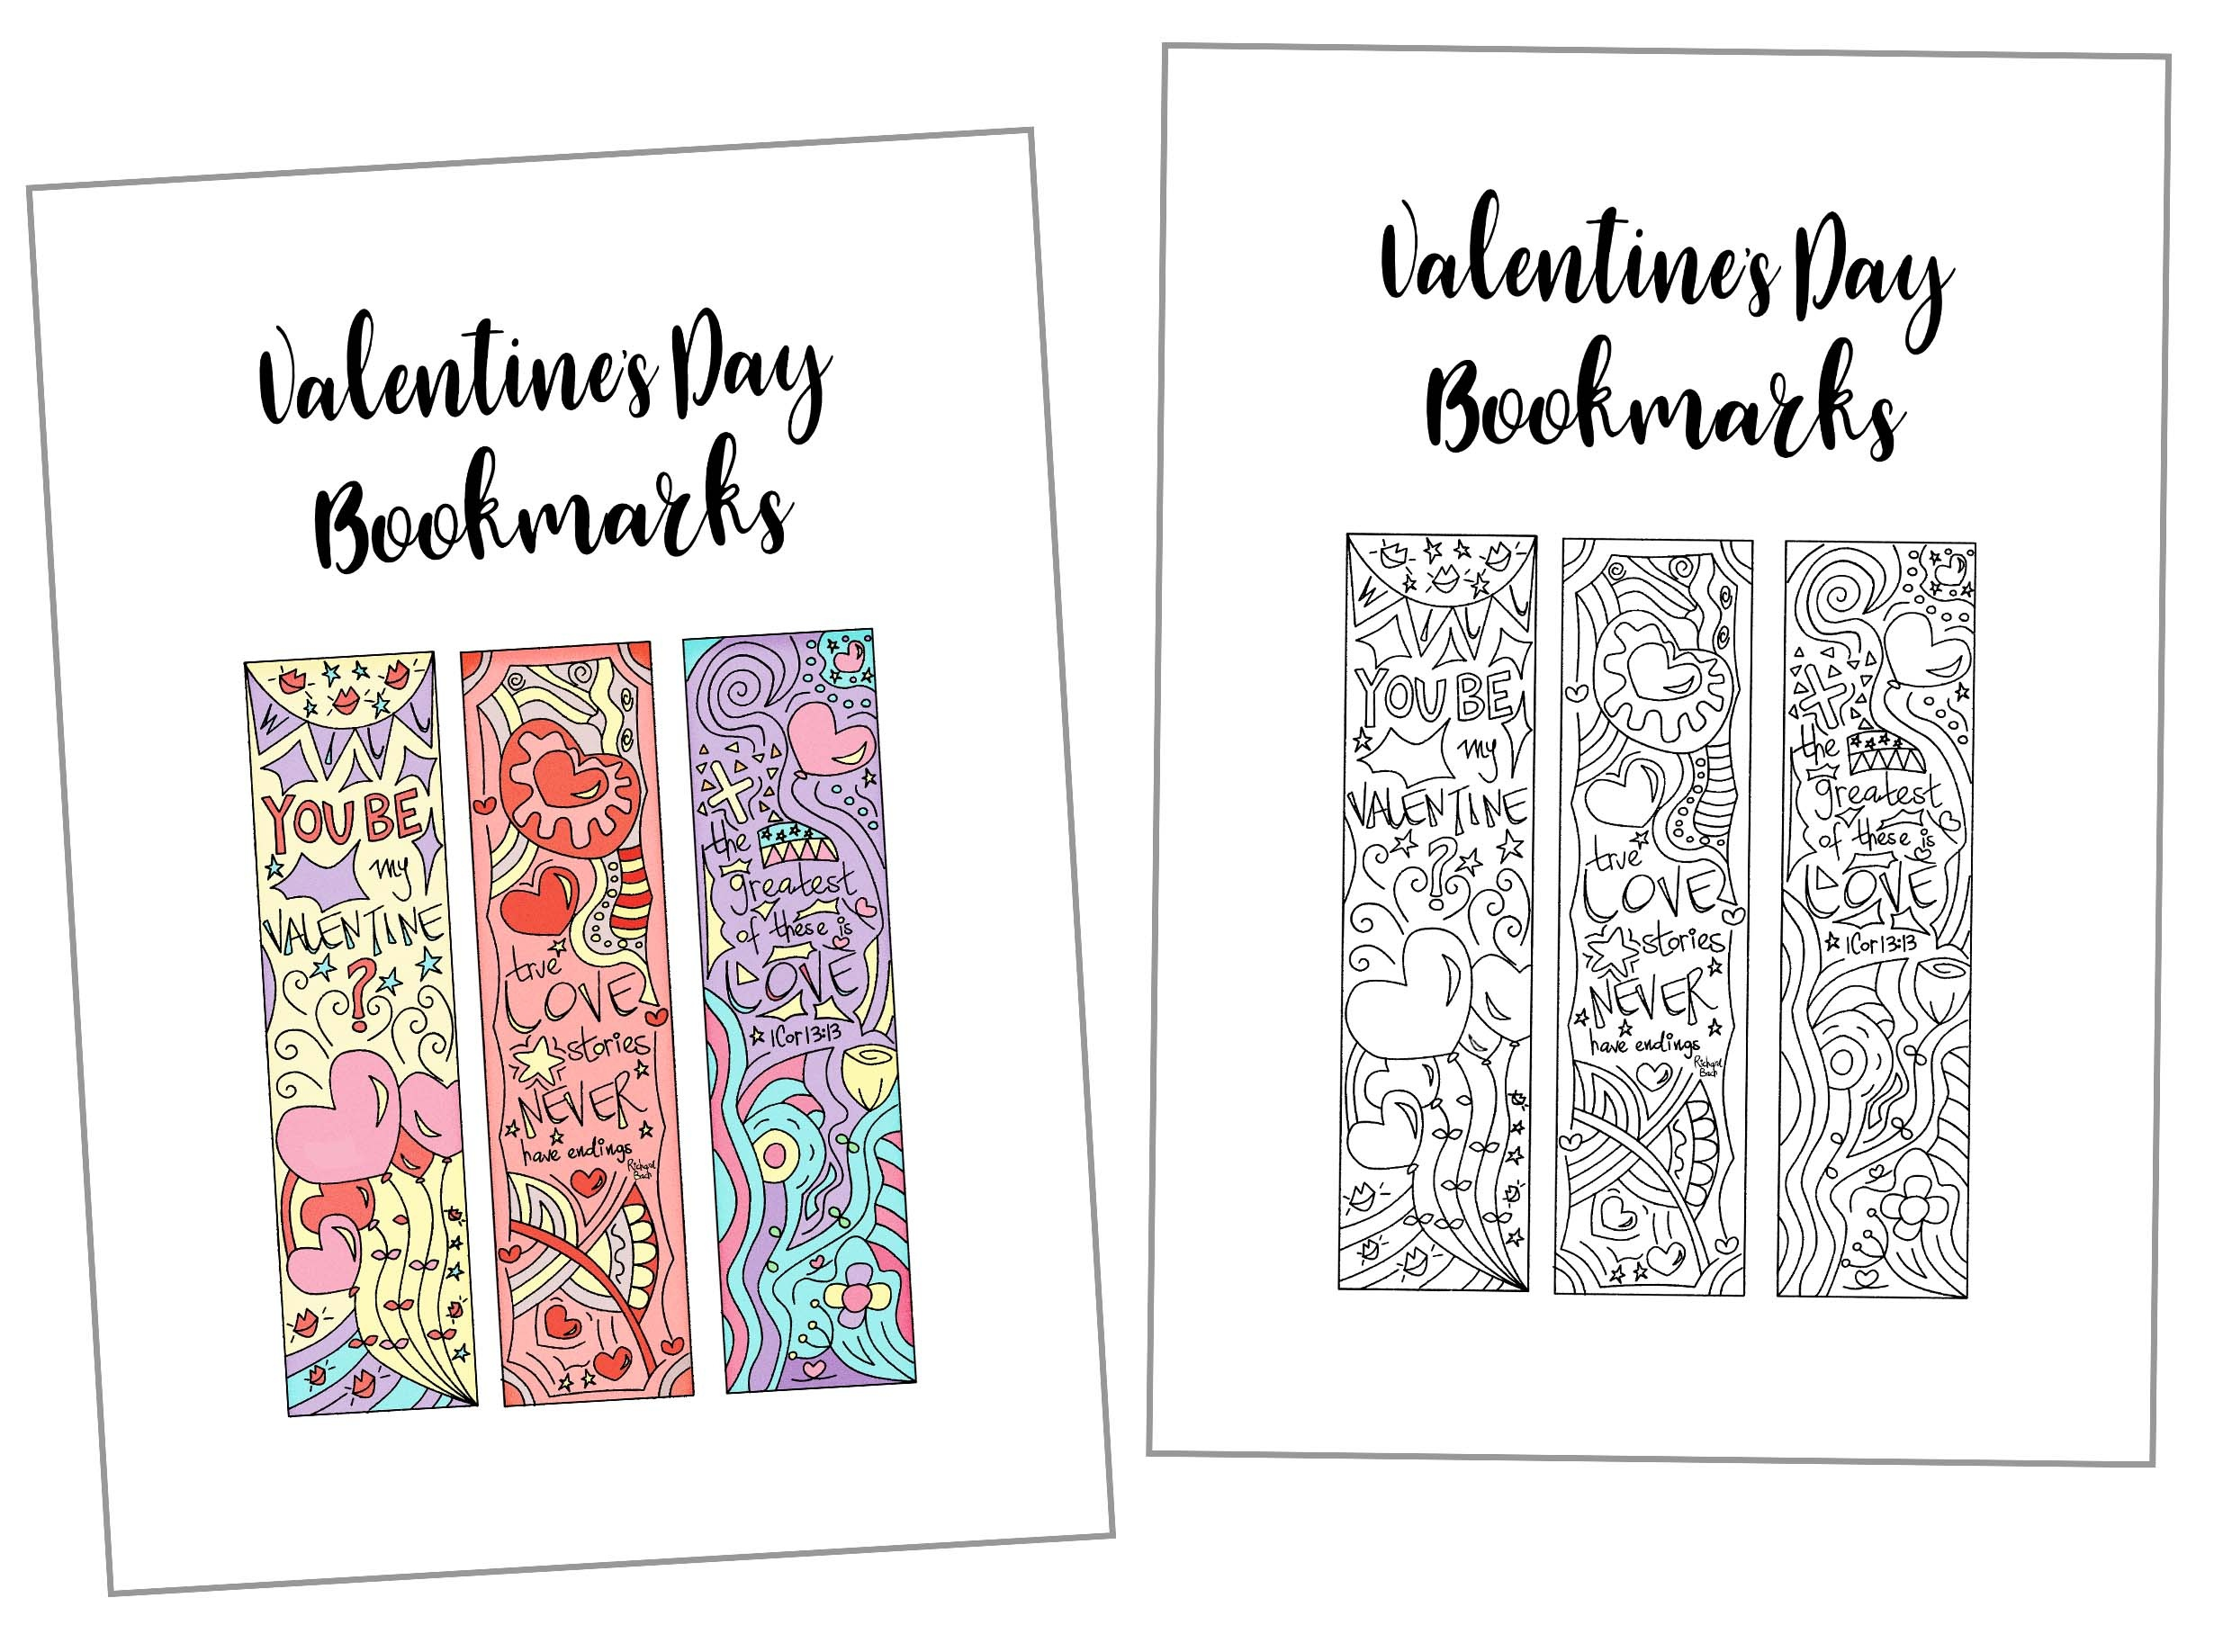 Coloring Valentine's Day Bookmarks Free Printable - Free Printable Bookmarks